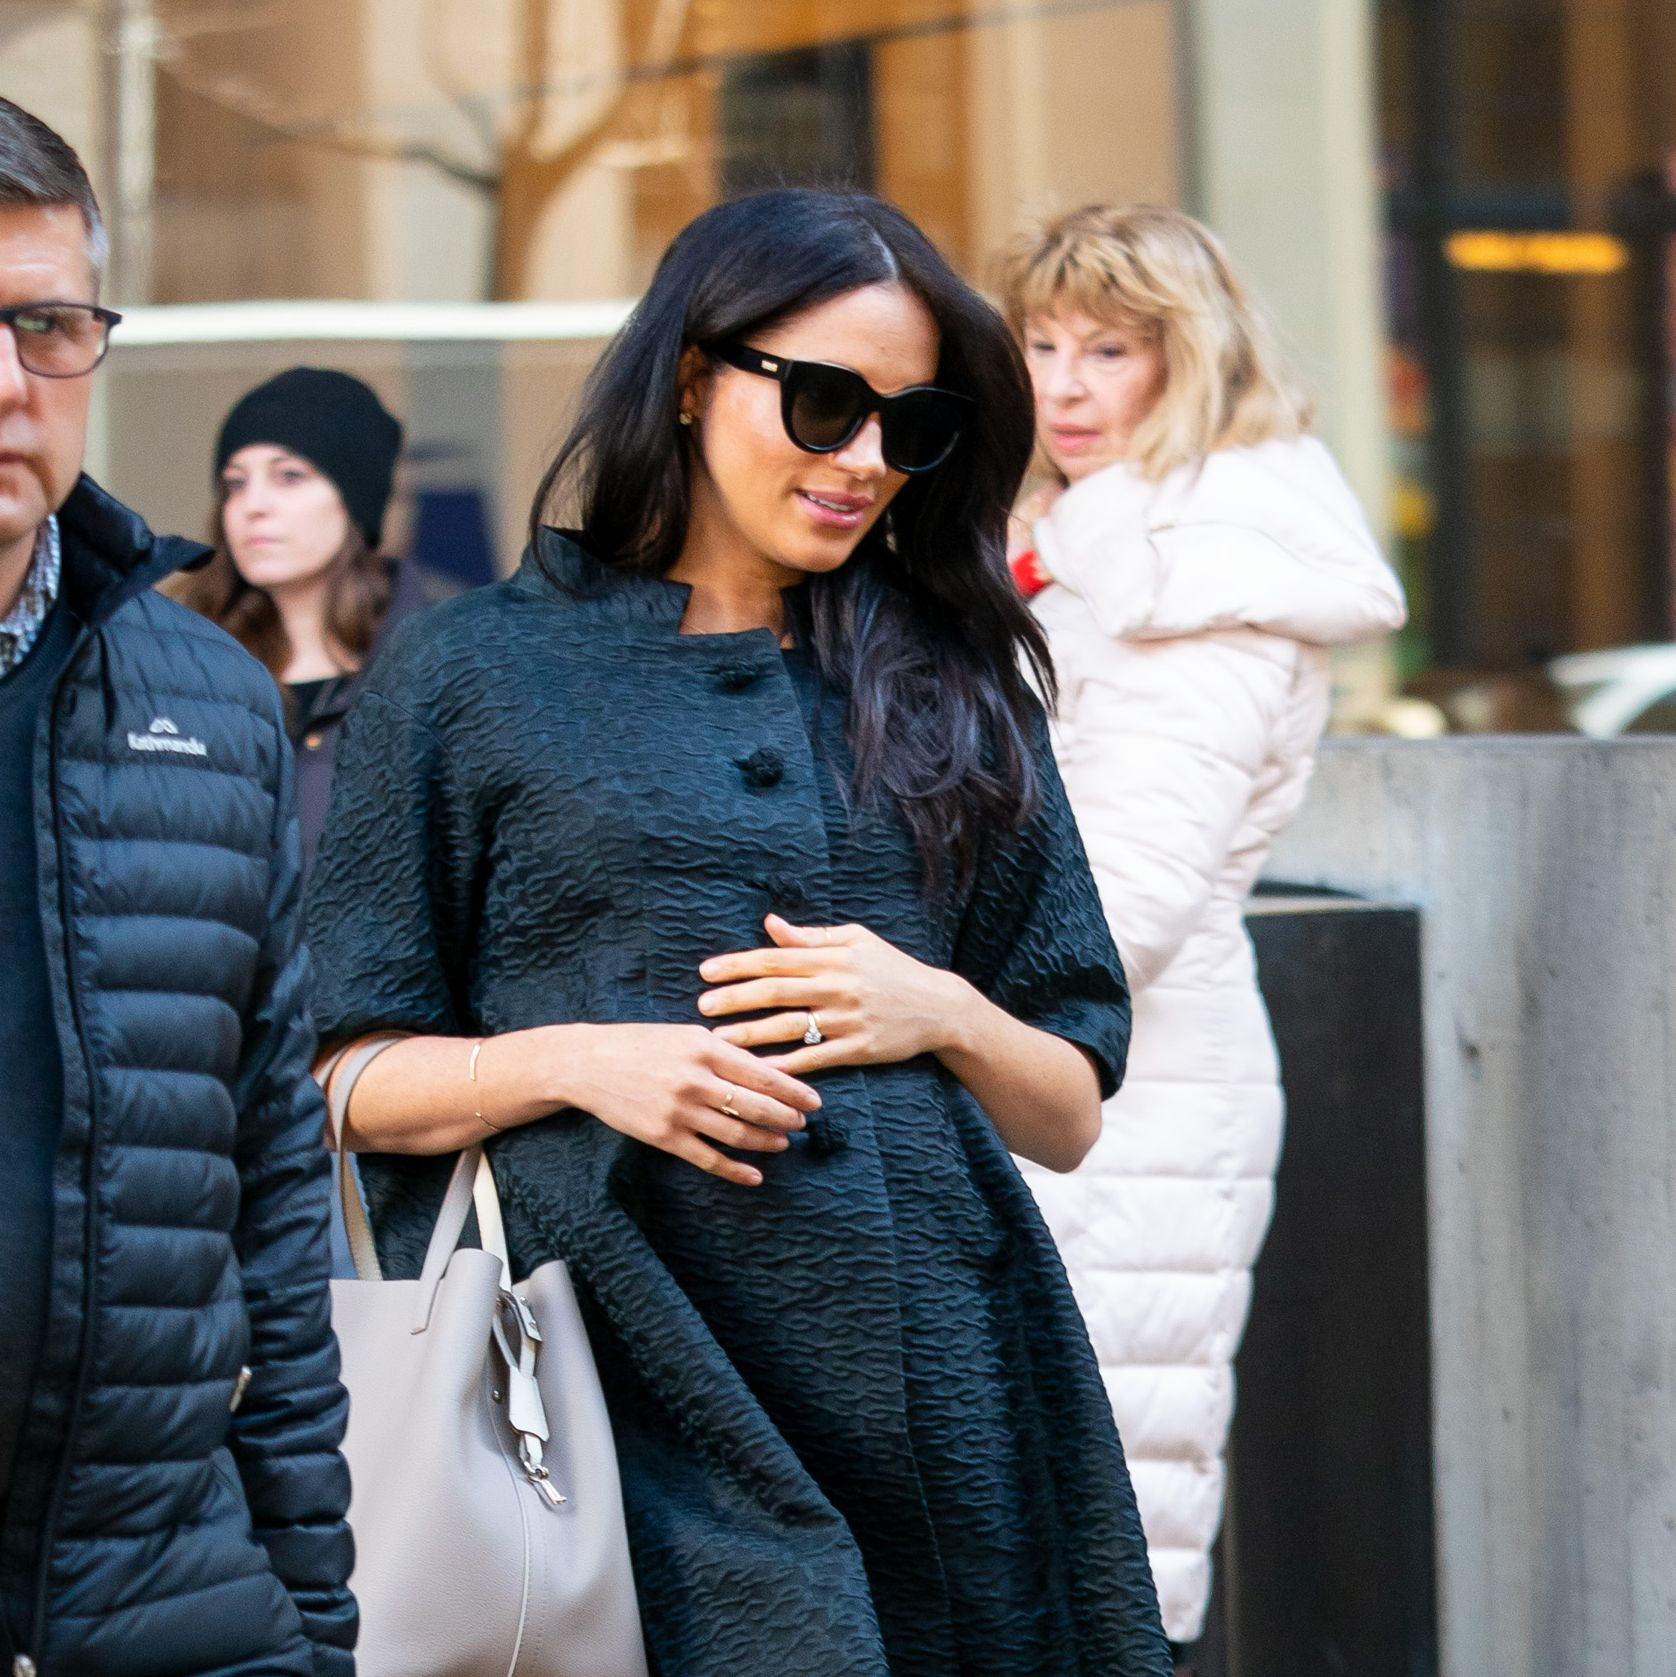 Why are there so many photos of Meghan in New York when it's a private trip?